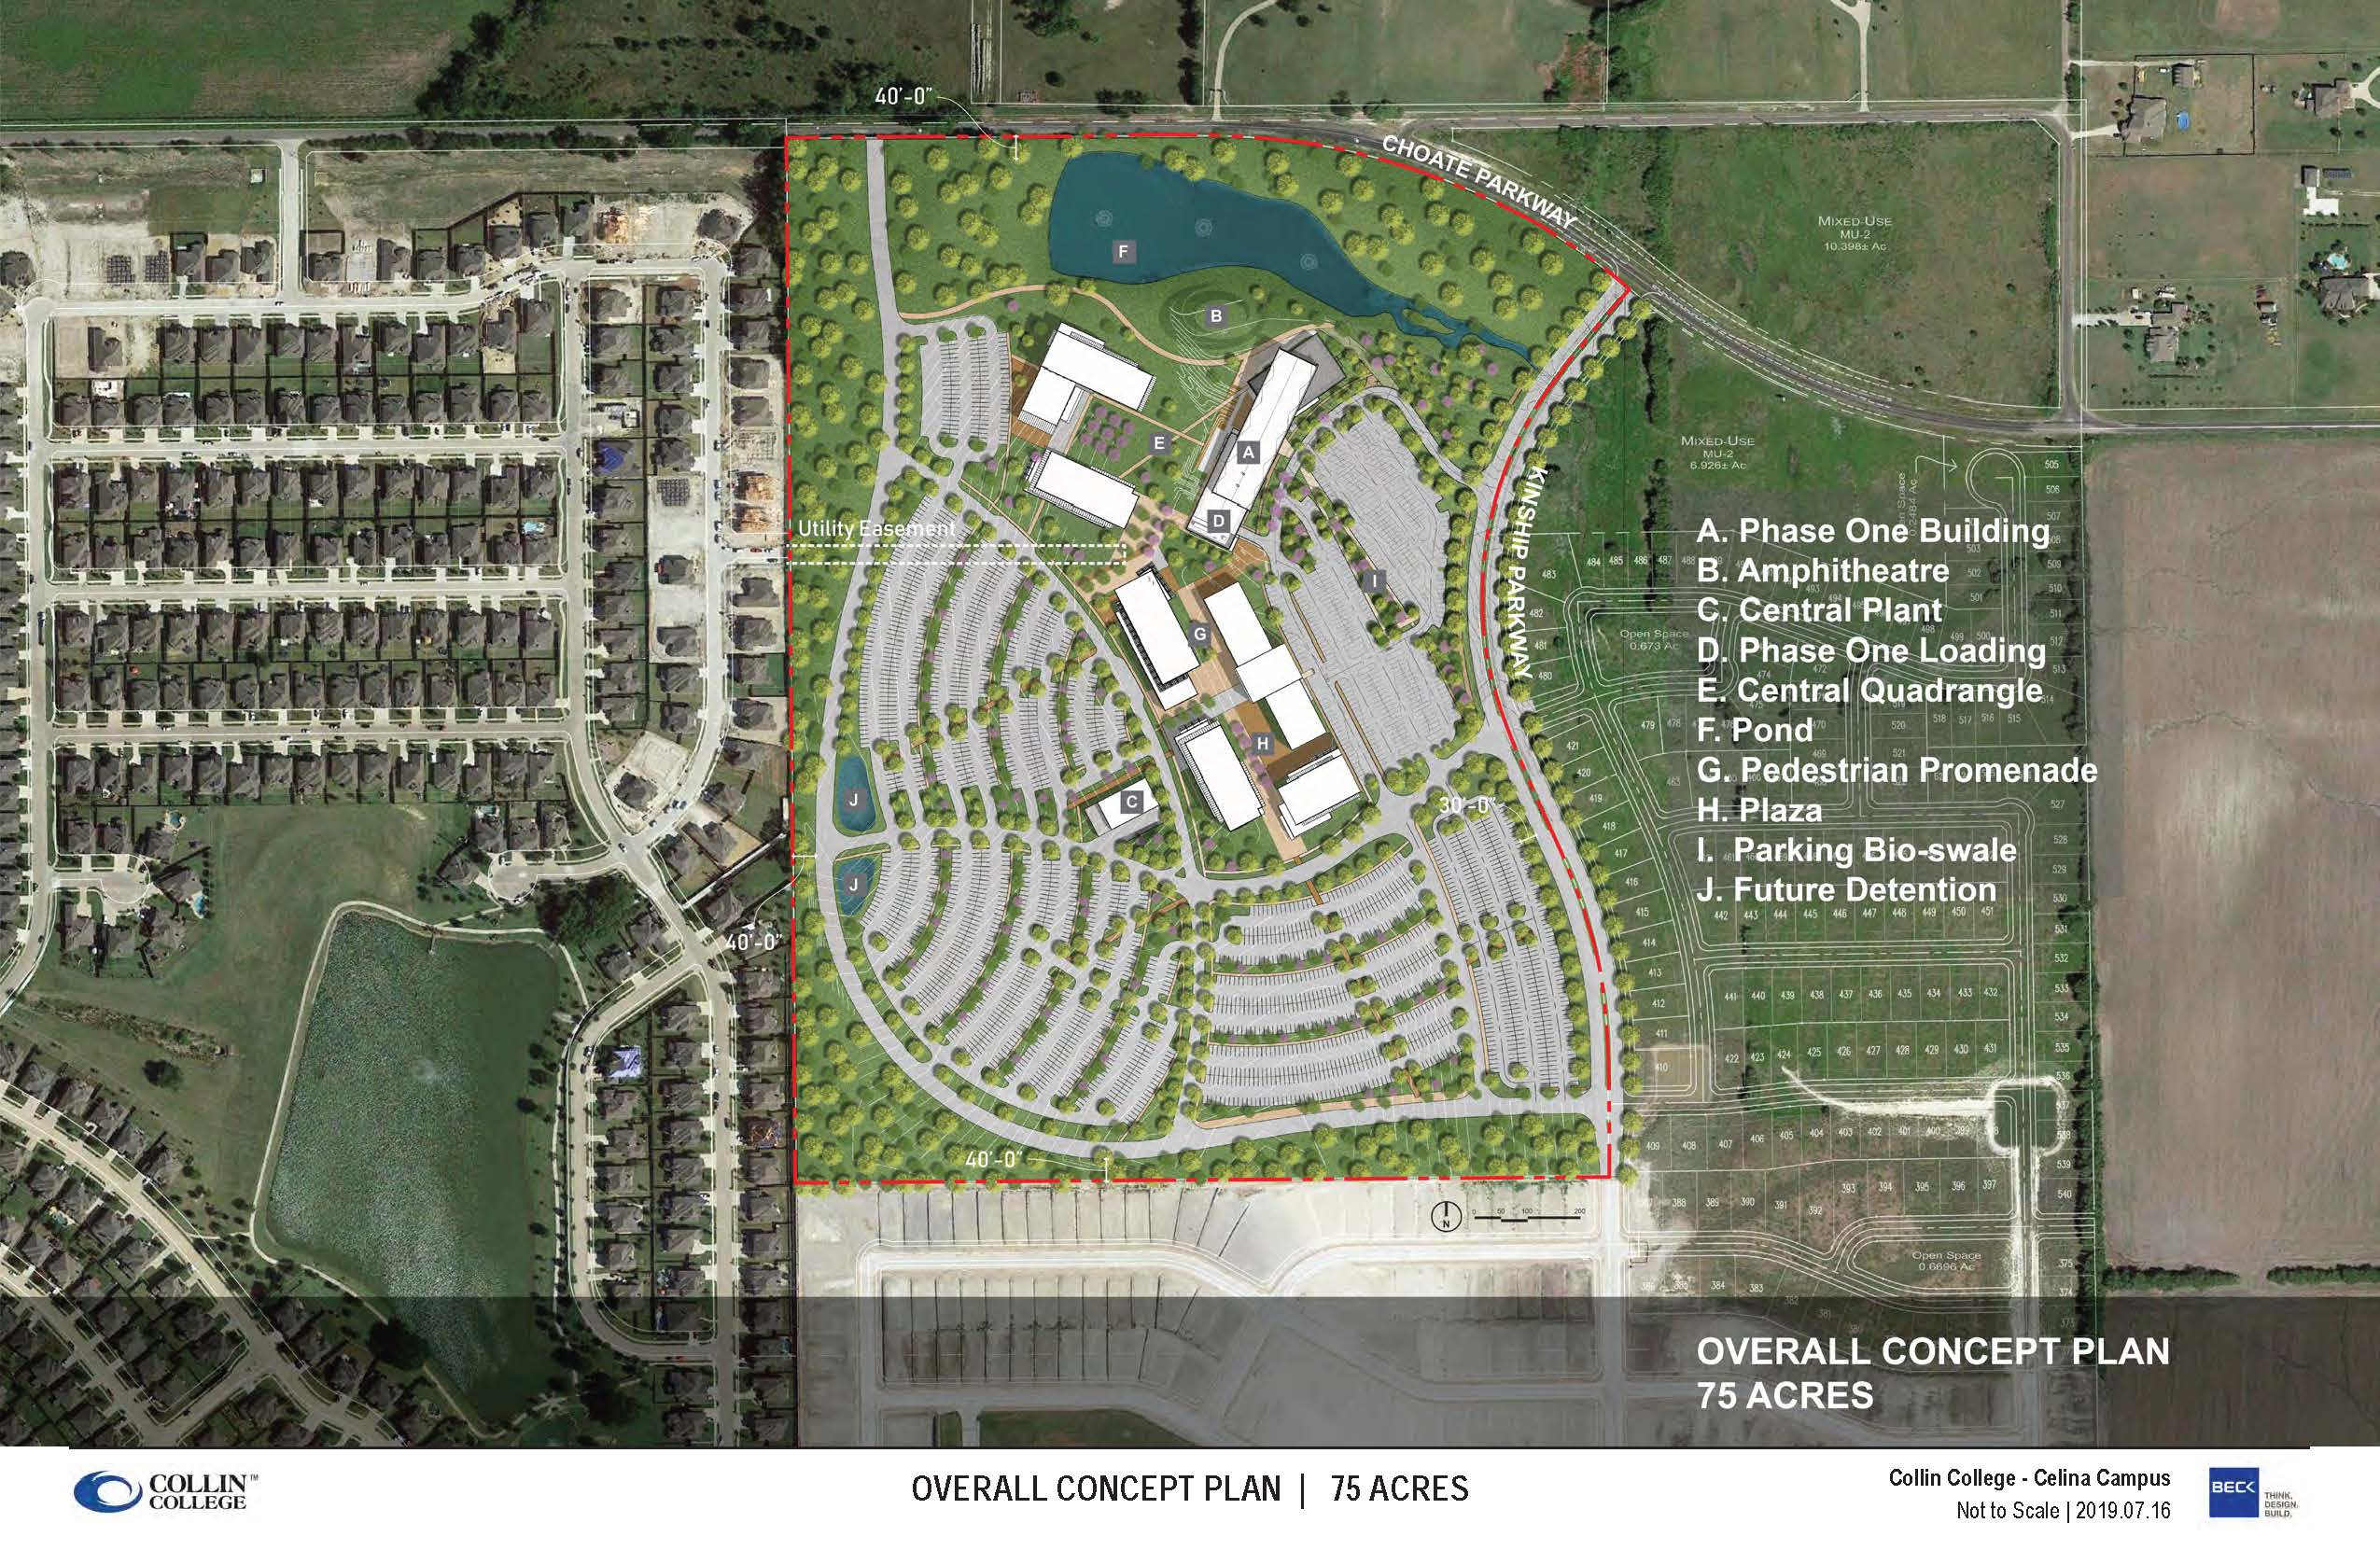 Collin College - Ultimate Site Plan